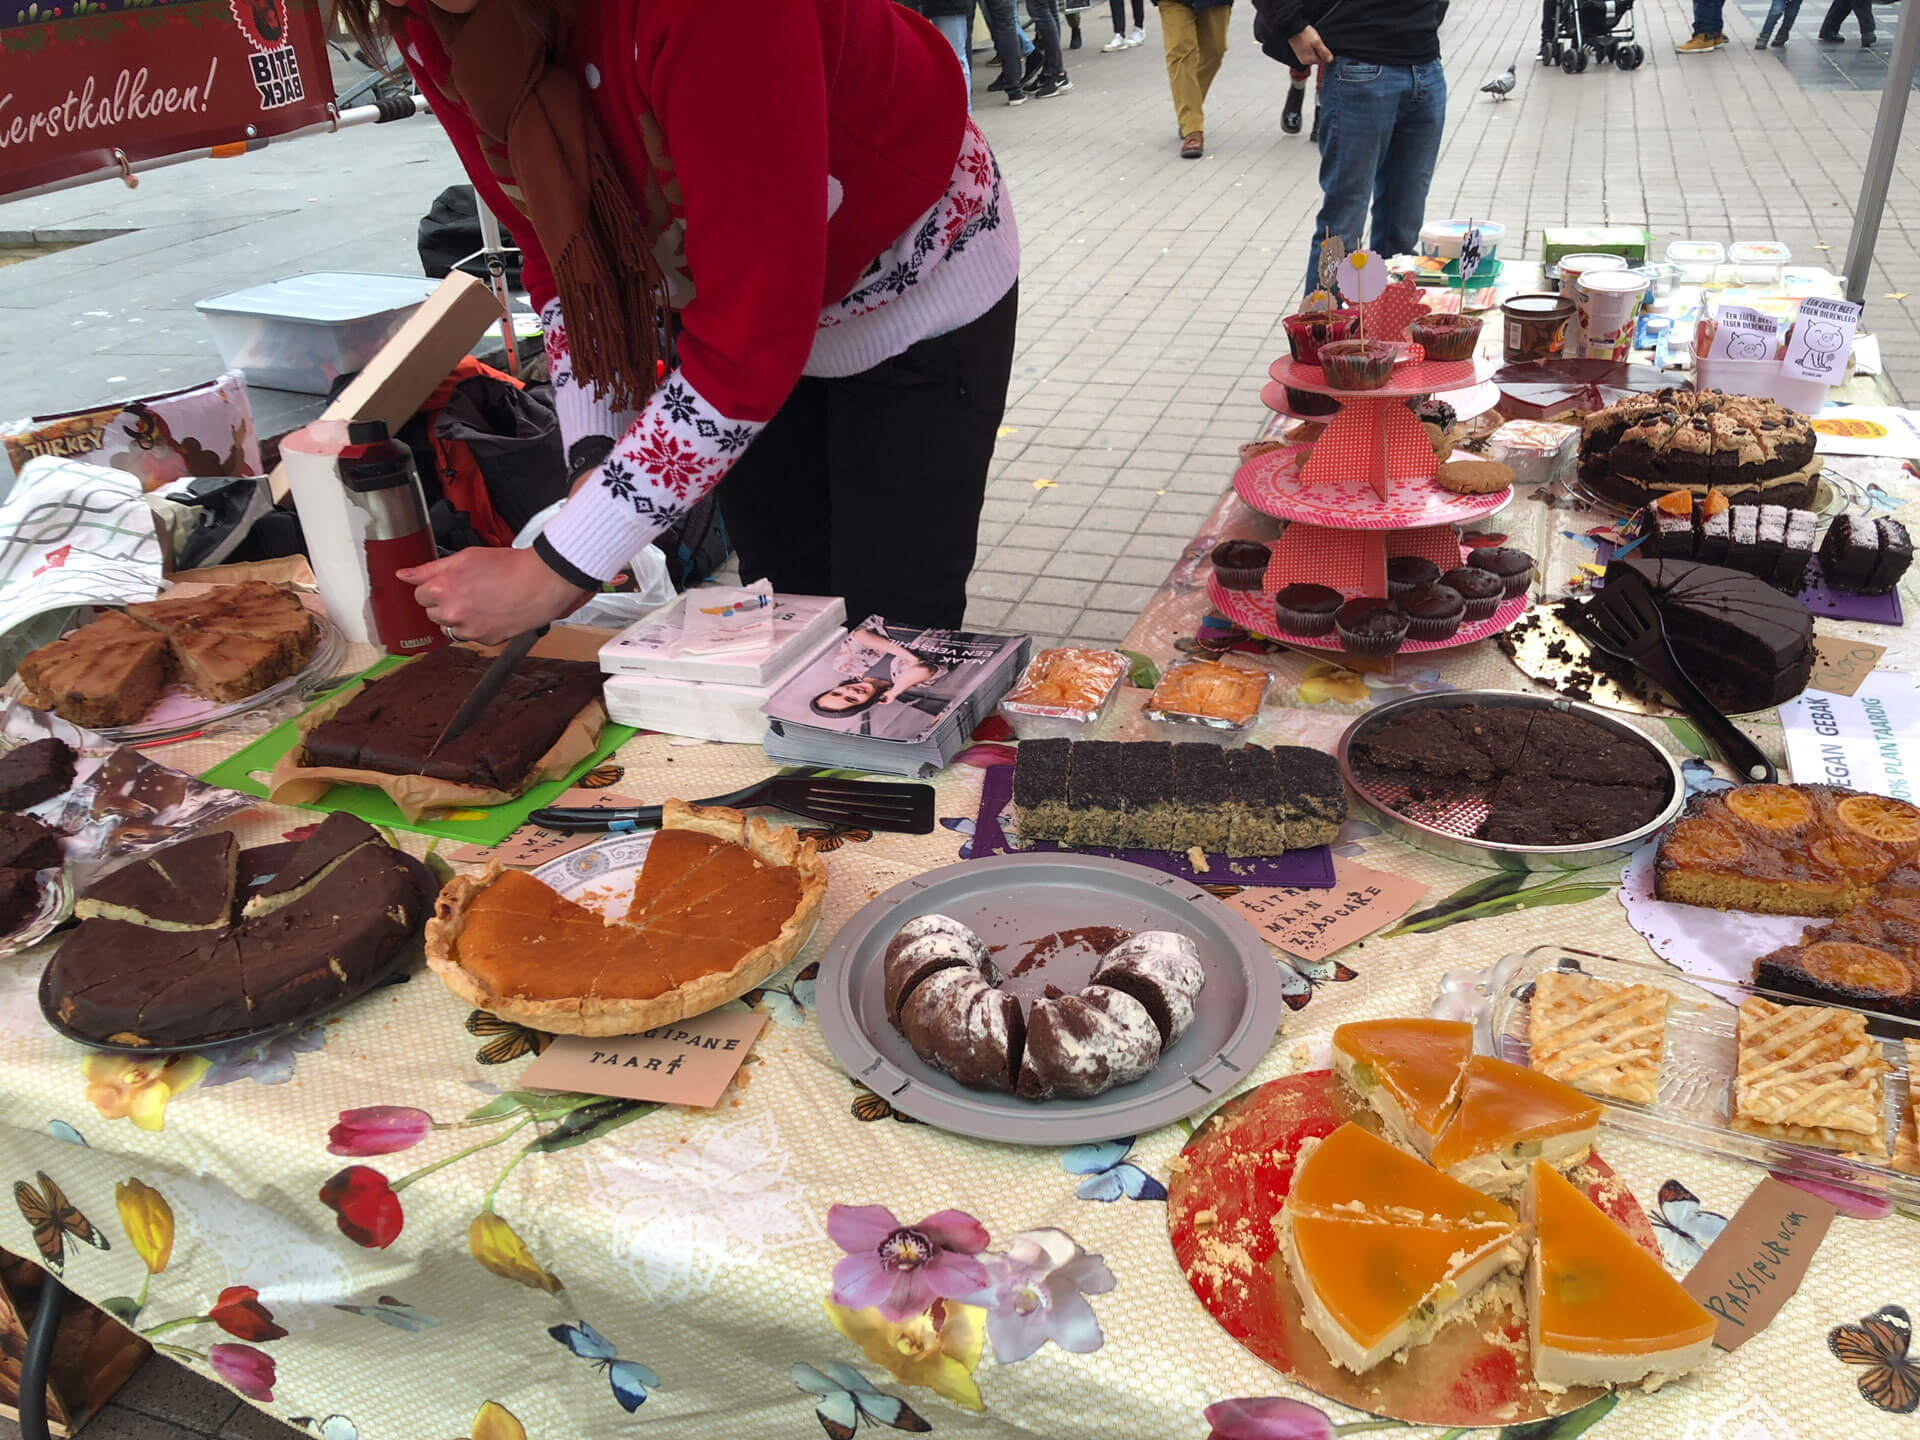 Winter bake sale Antwerpen